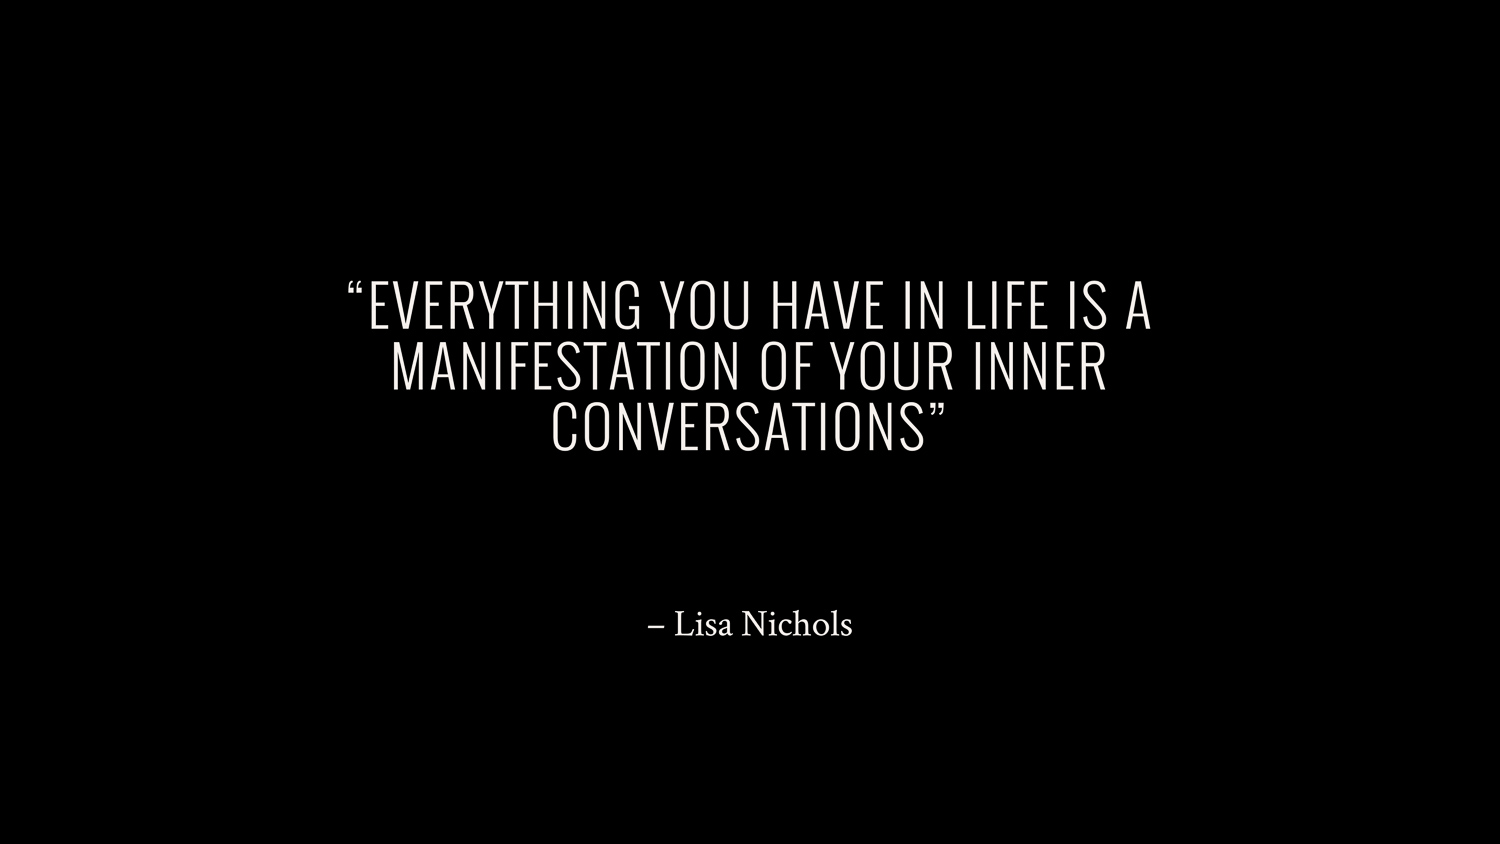 Everything you have in life is a manifestation of your inner conversations — Lisa Nichols